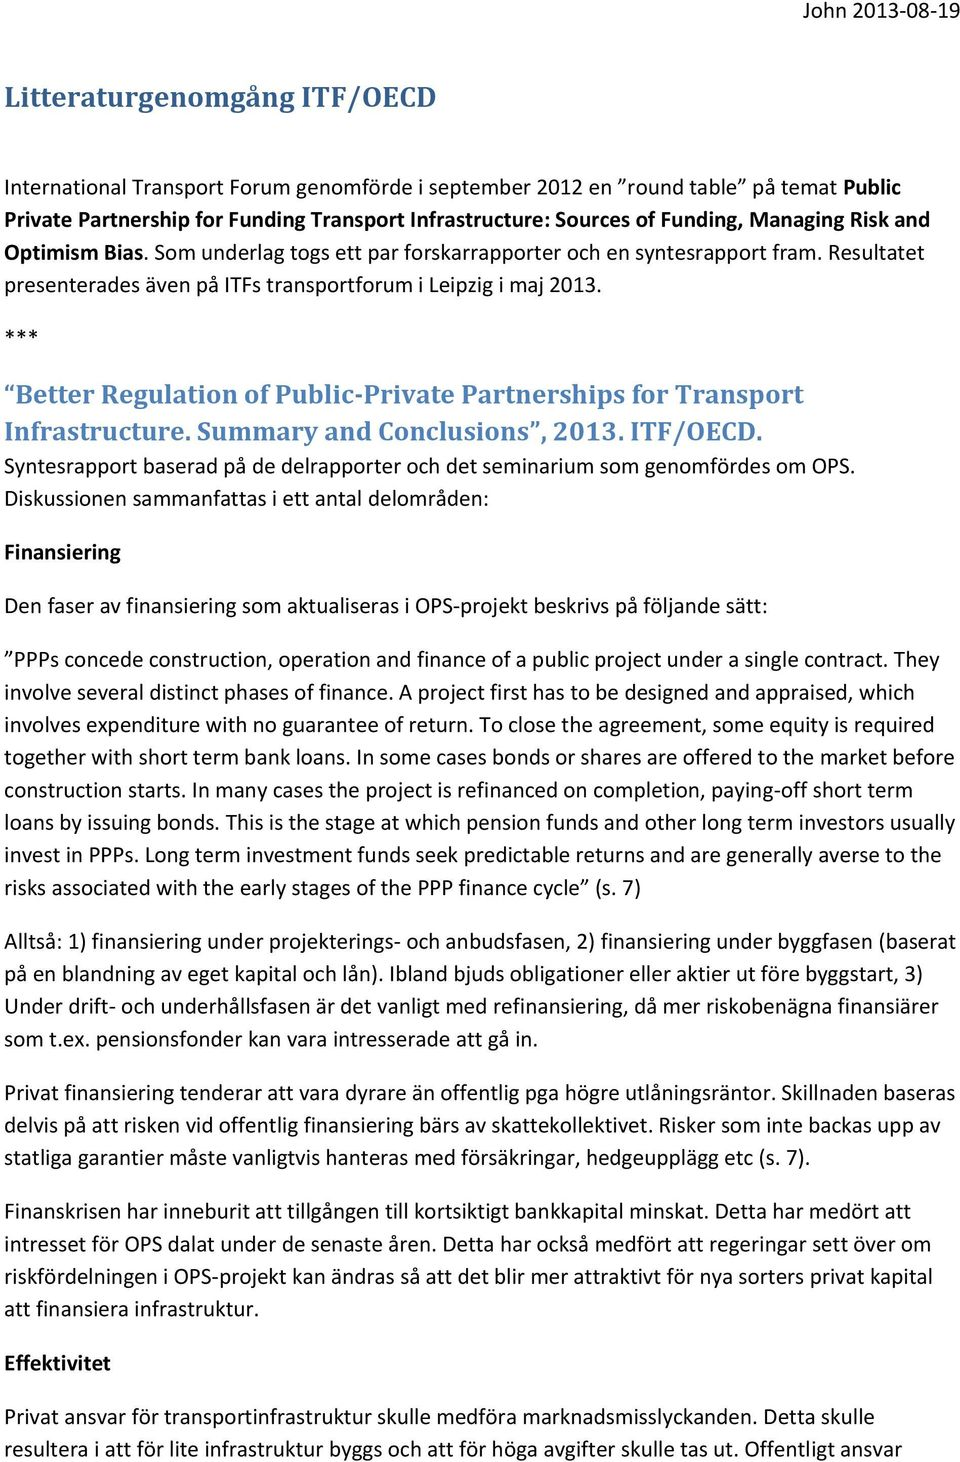 Better Regulation of Public-Private Partnerships for Transport Infrastructure. Summary and Conclusions, 2013. ITF/OECD.